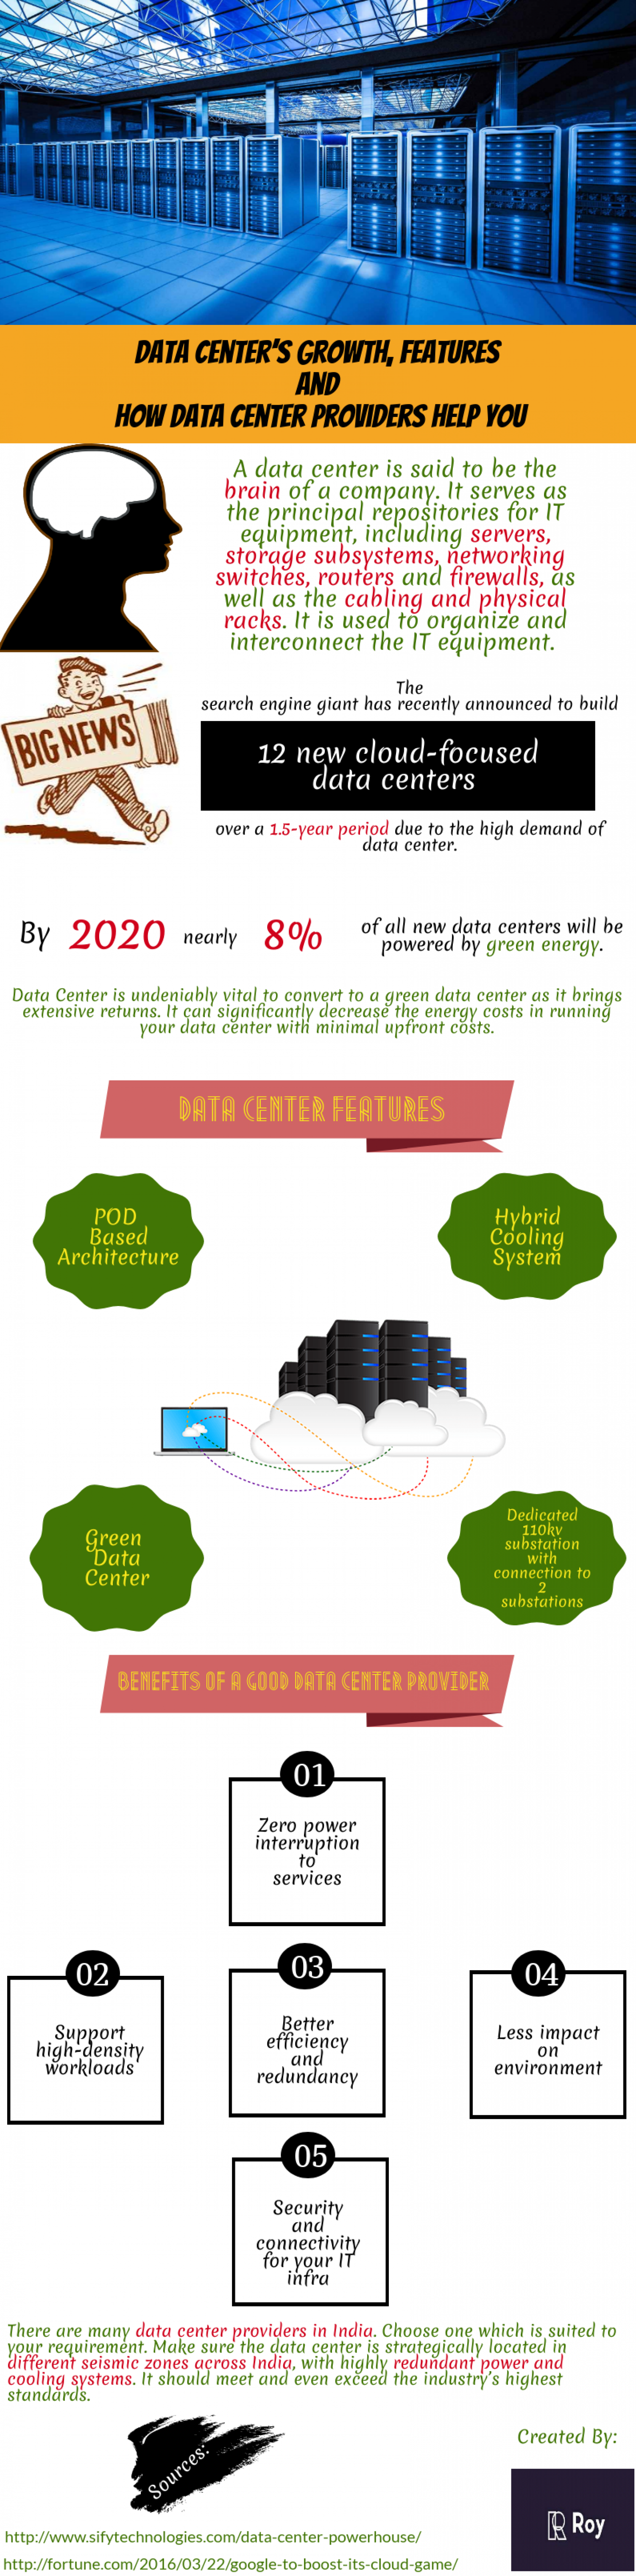 Data Center's Growth, Features and How Data Center Providers Help You Infographic